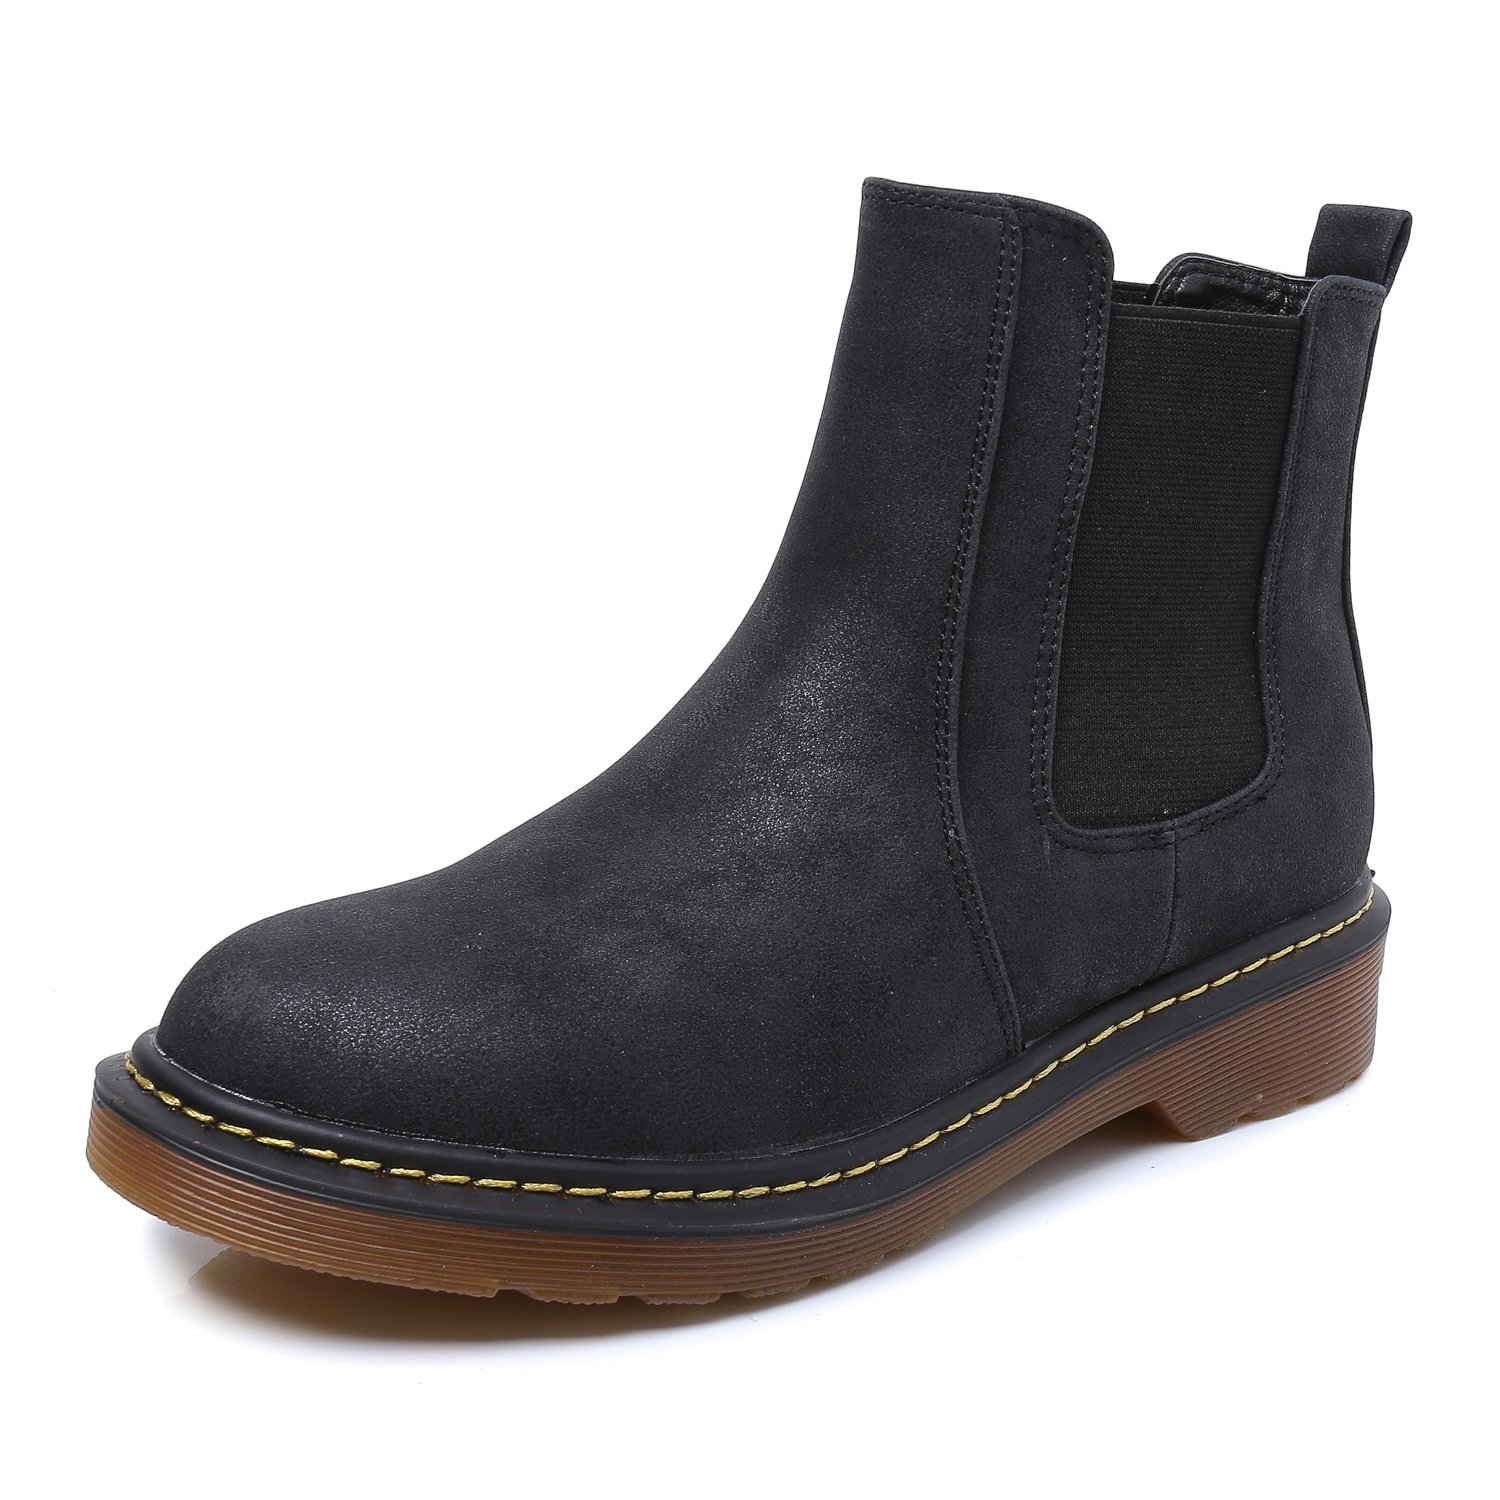 Smilun Kids¡¯s Ankle Chelsea Boots Flats Low Heel with Block Western Chunky Heel Chelsea Boots for Kids Black US6